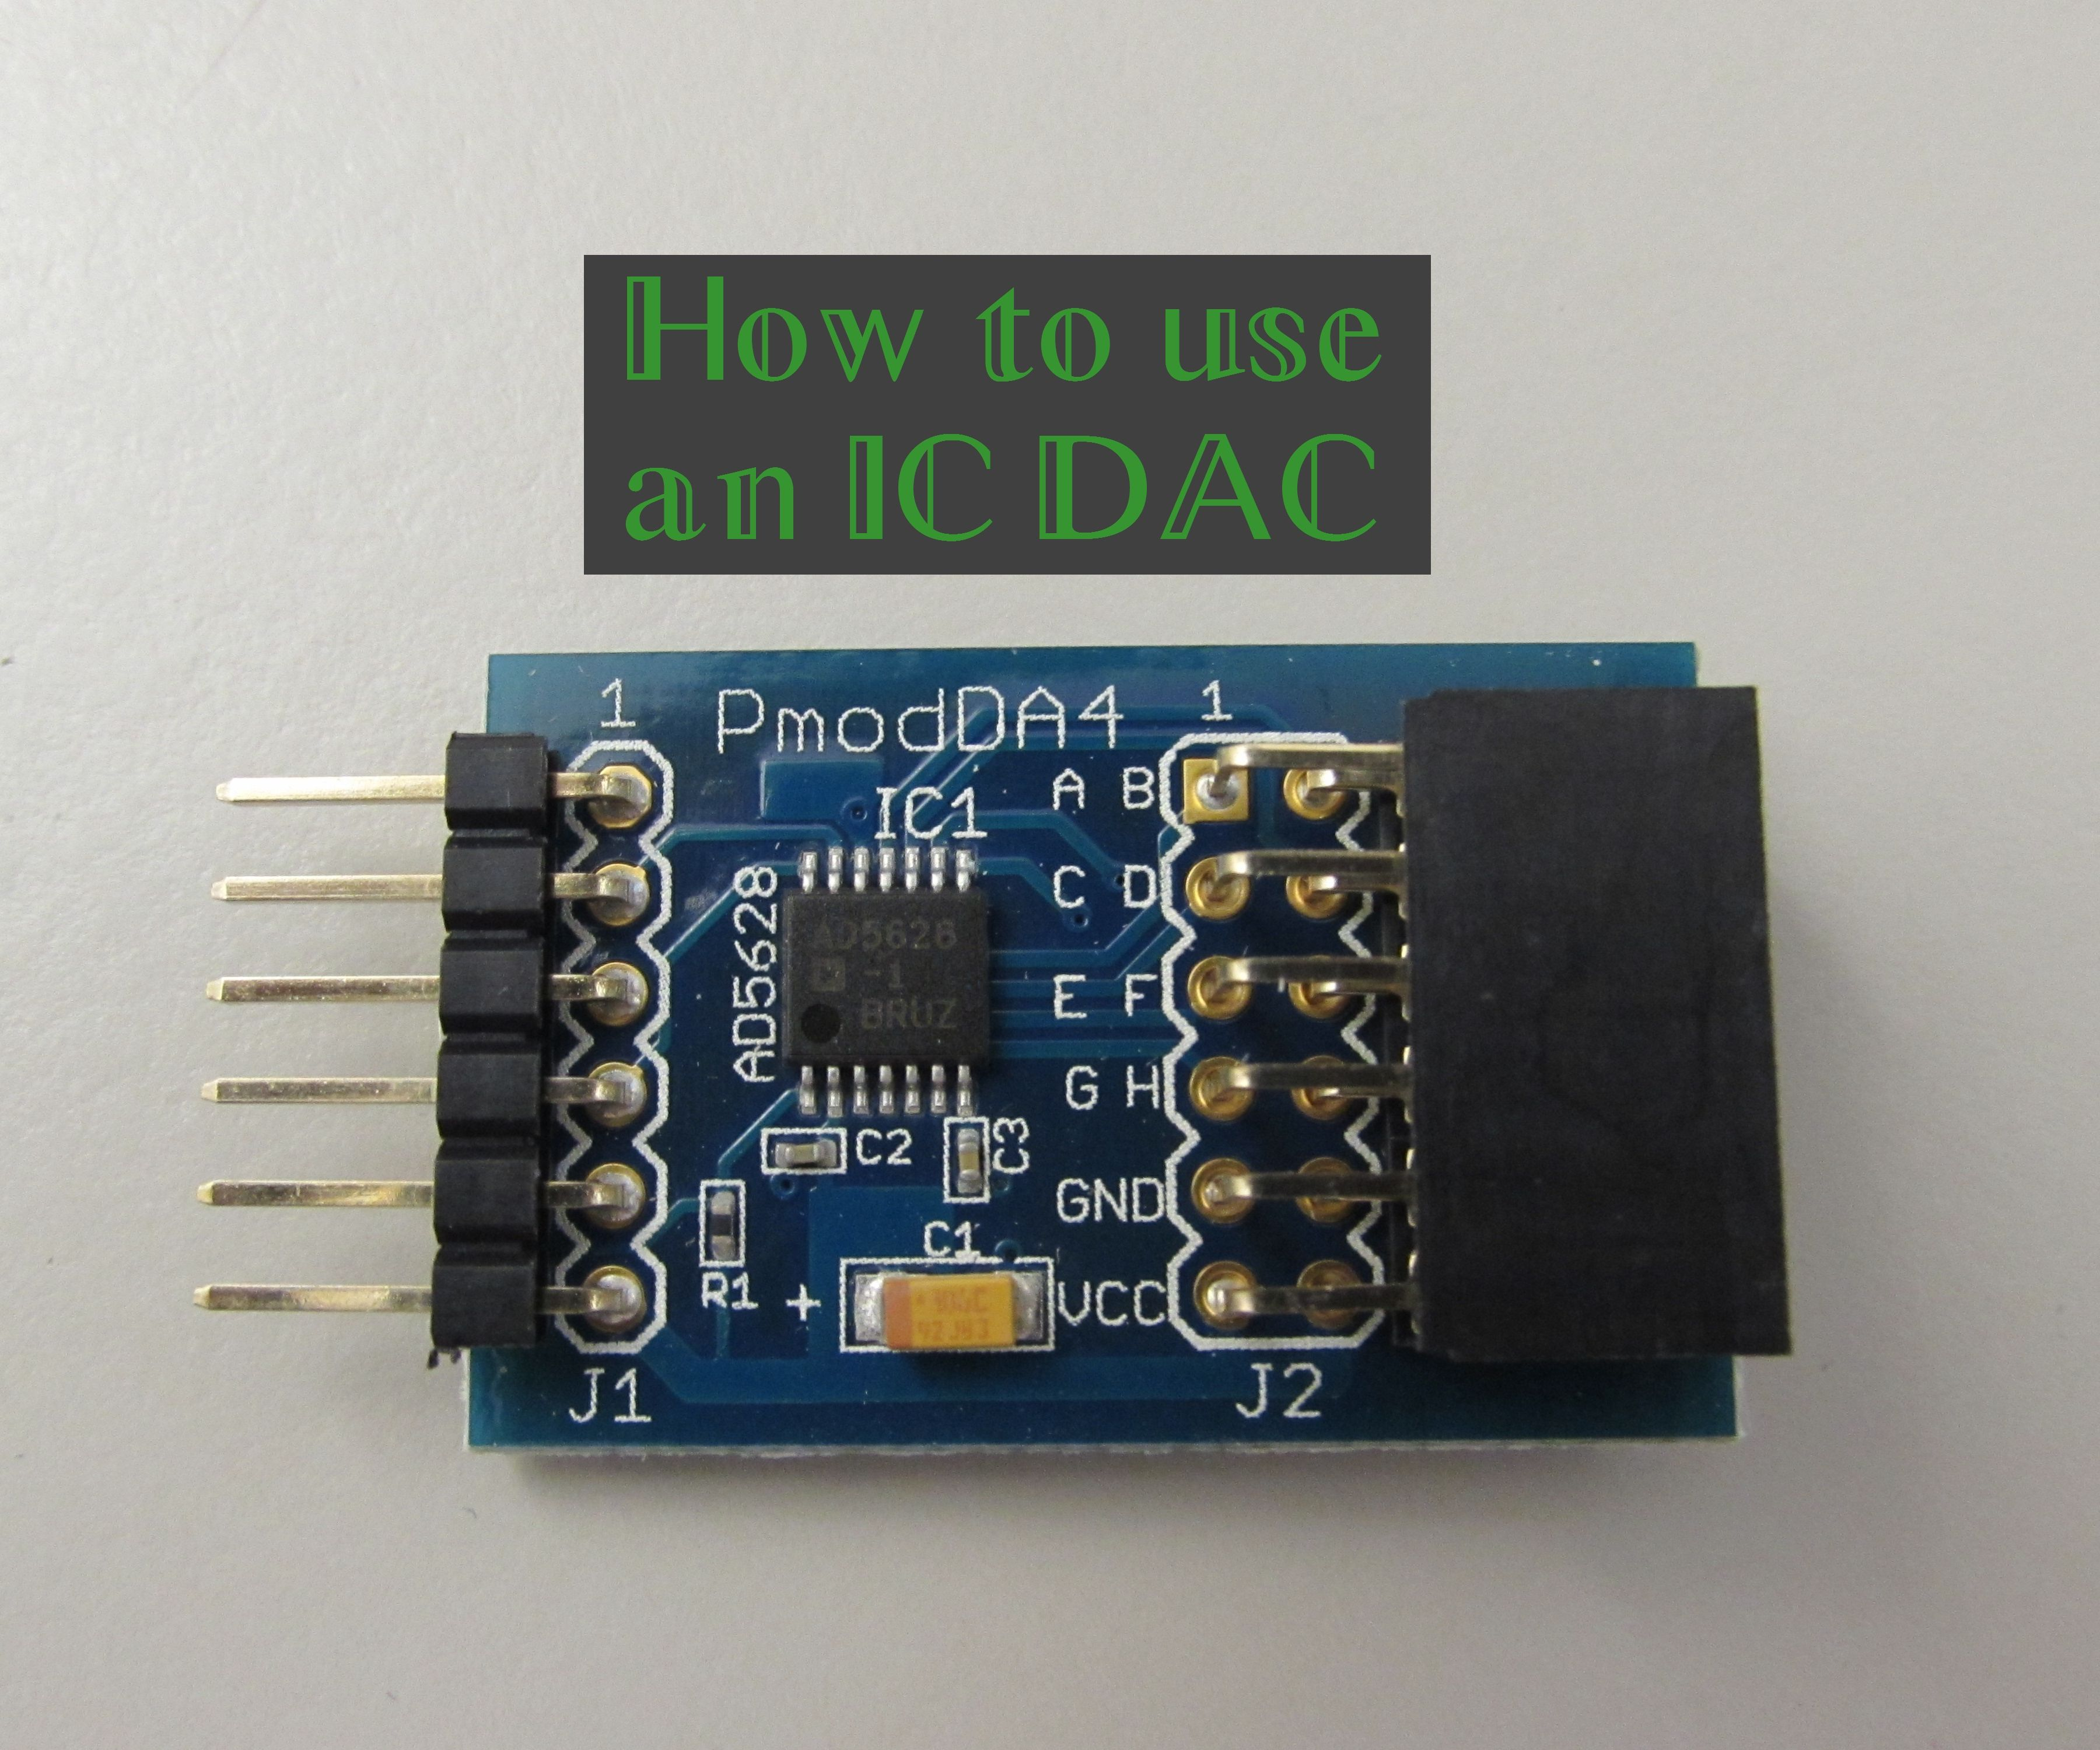 How to use an IC DAC